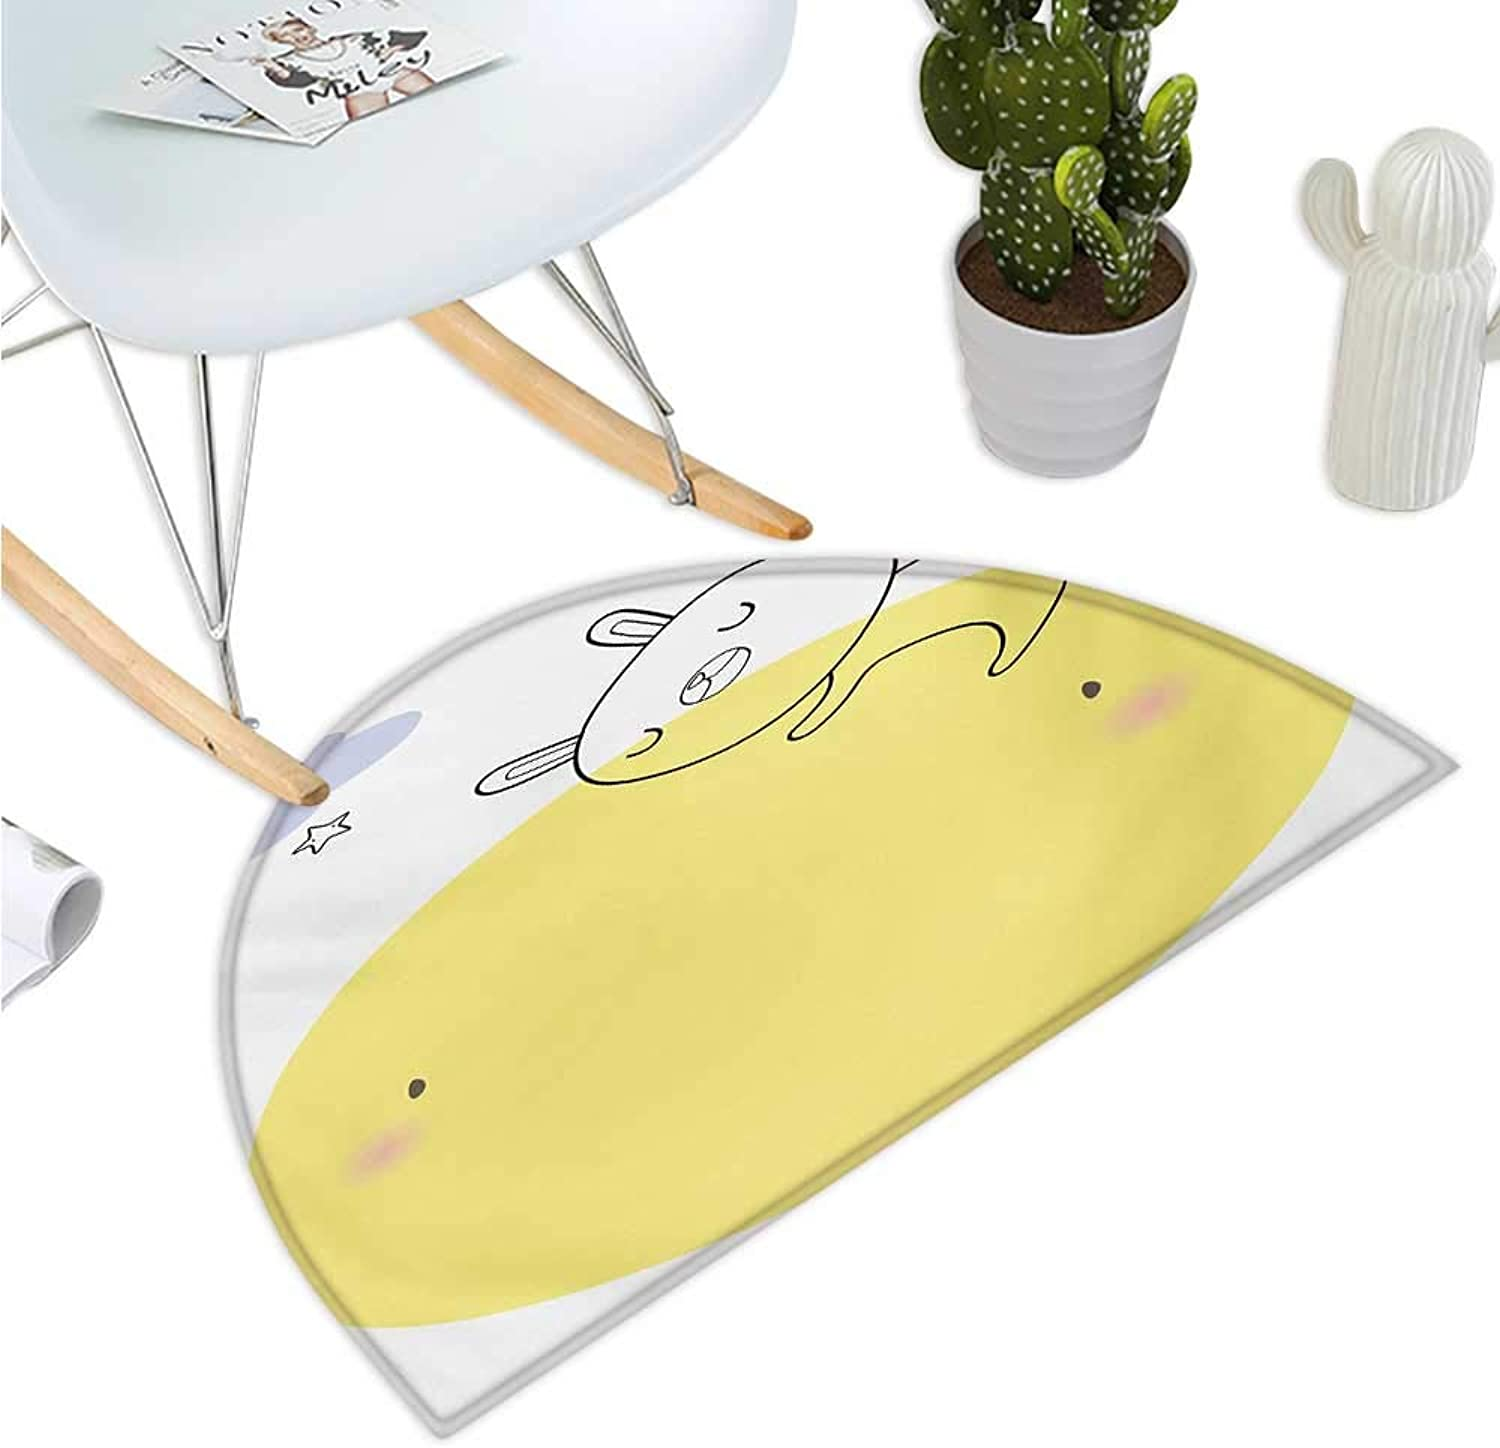 Moon Semicircular Cushion Doodle Style Cartoon Bunny Sleeping on Moon with Stars and Cloud colorful Image Entry Door Mat H 39.3  xD 59  Yellow Pink bluee